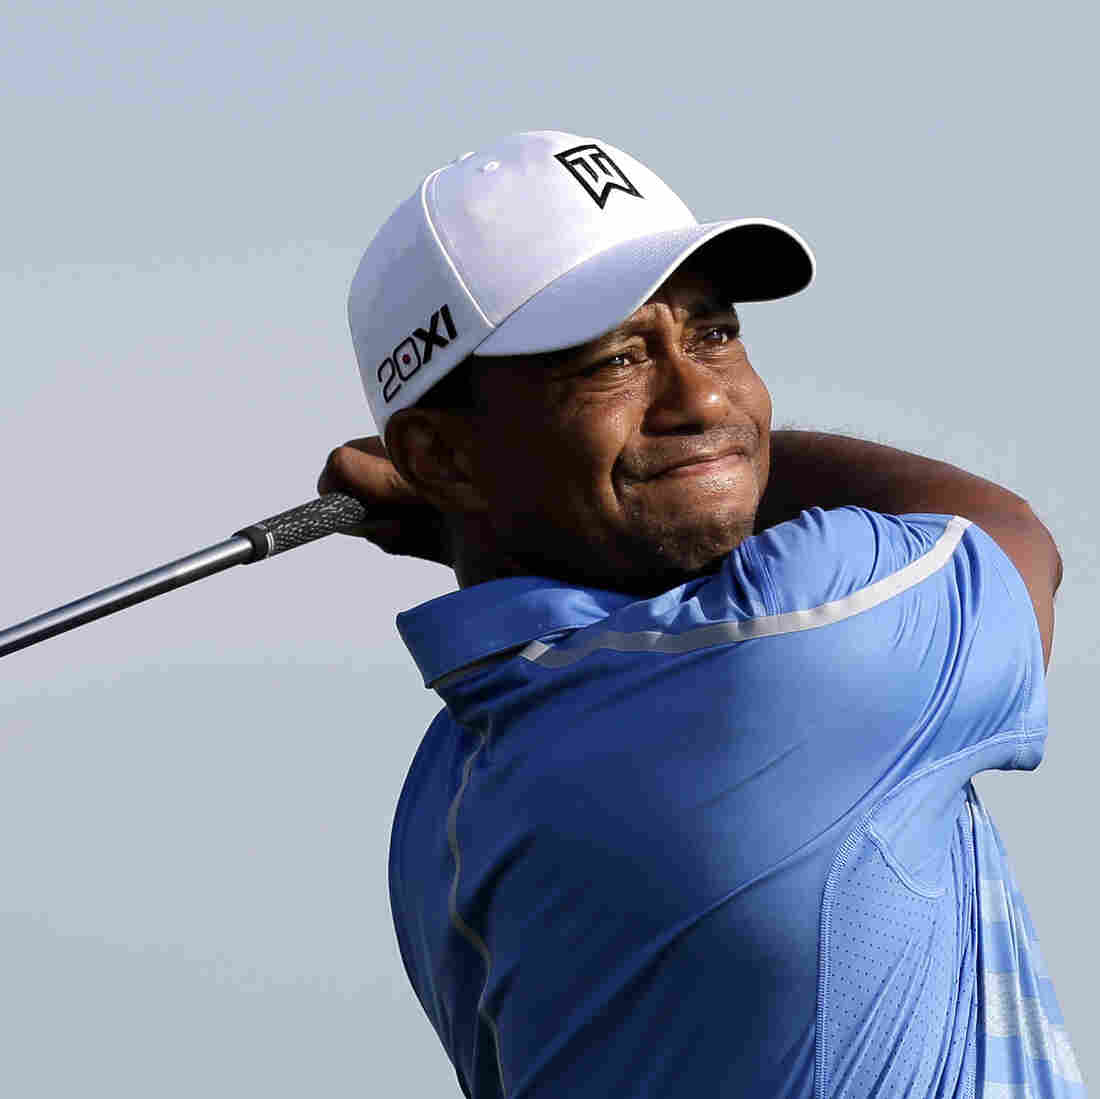 What To Make Of Tiger Woods' Major-less Year